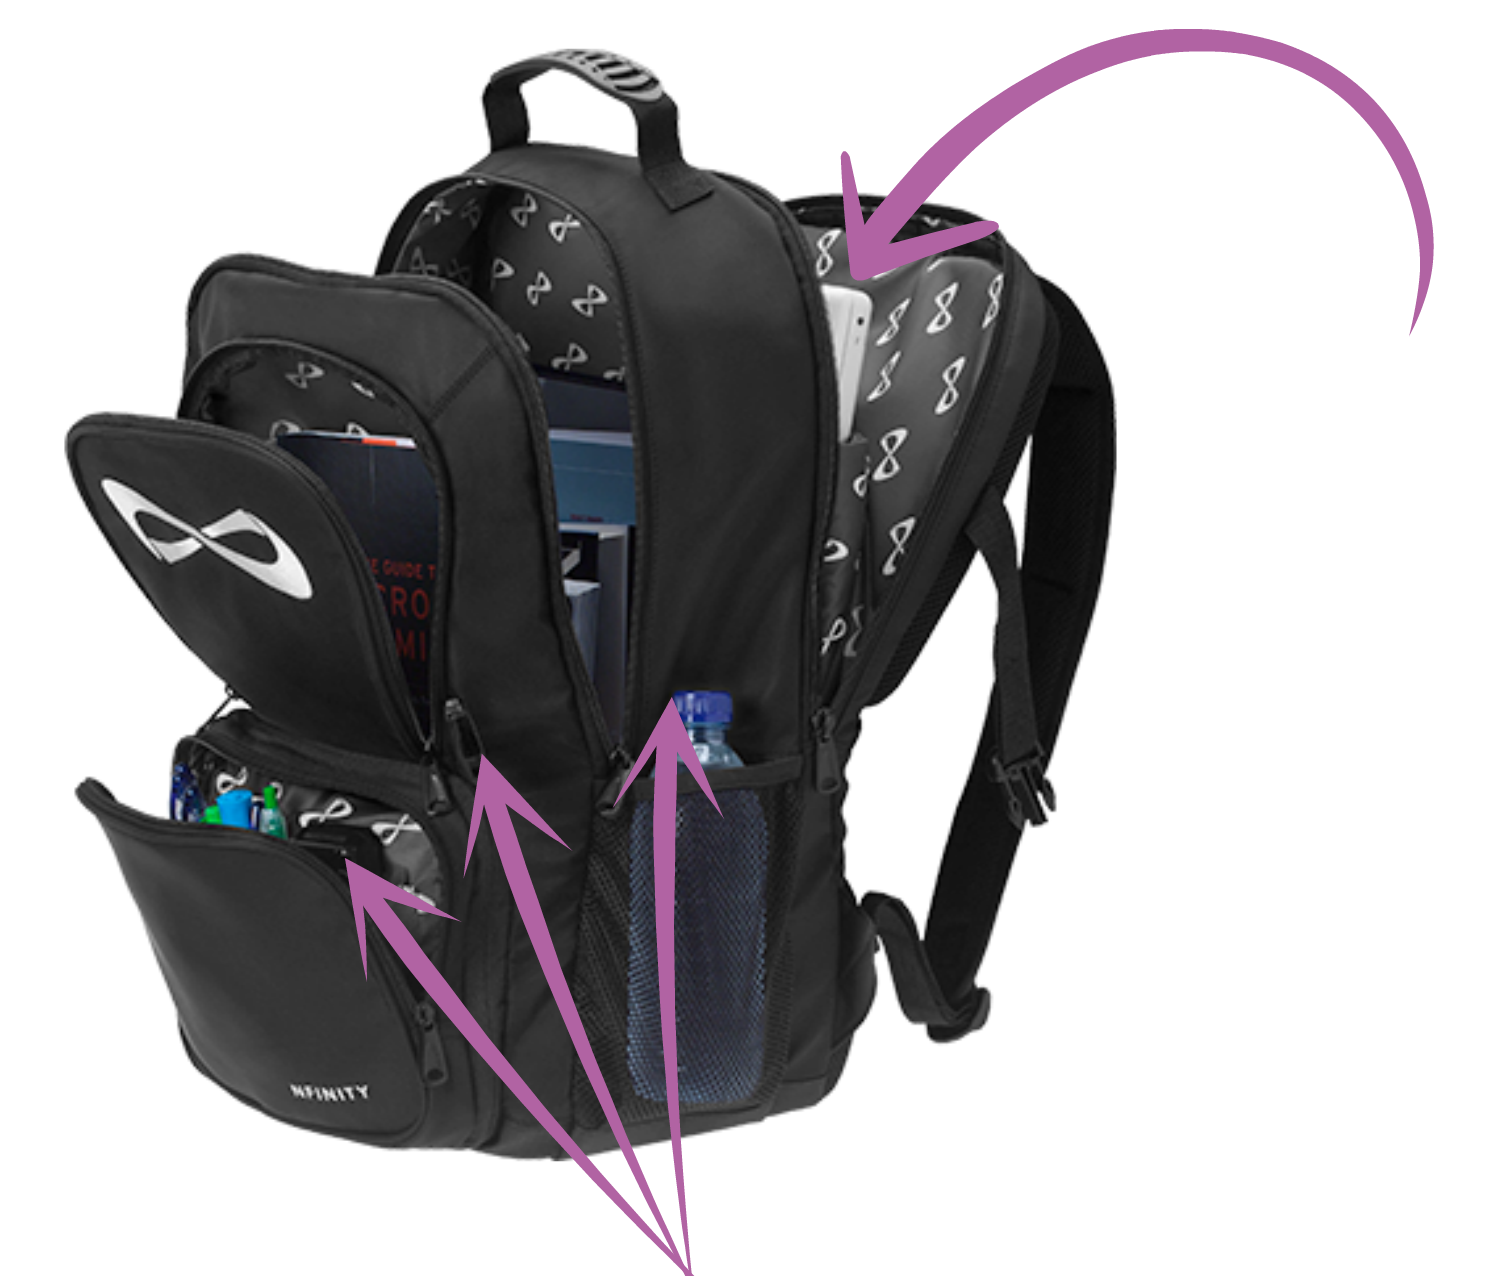 Nfinity Cheerleading Backpack